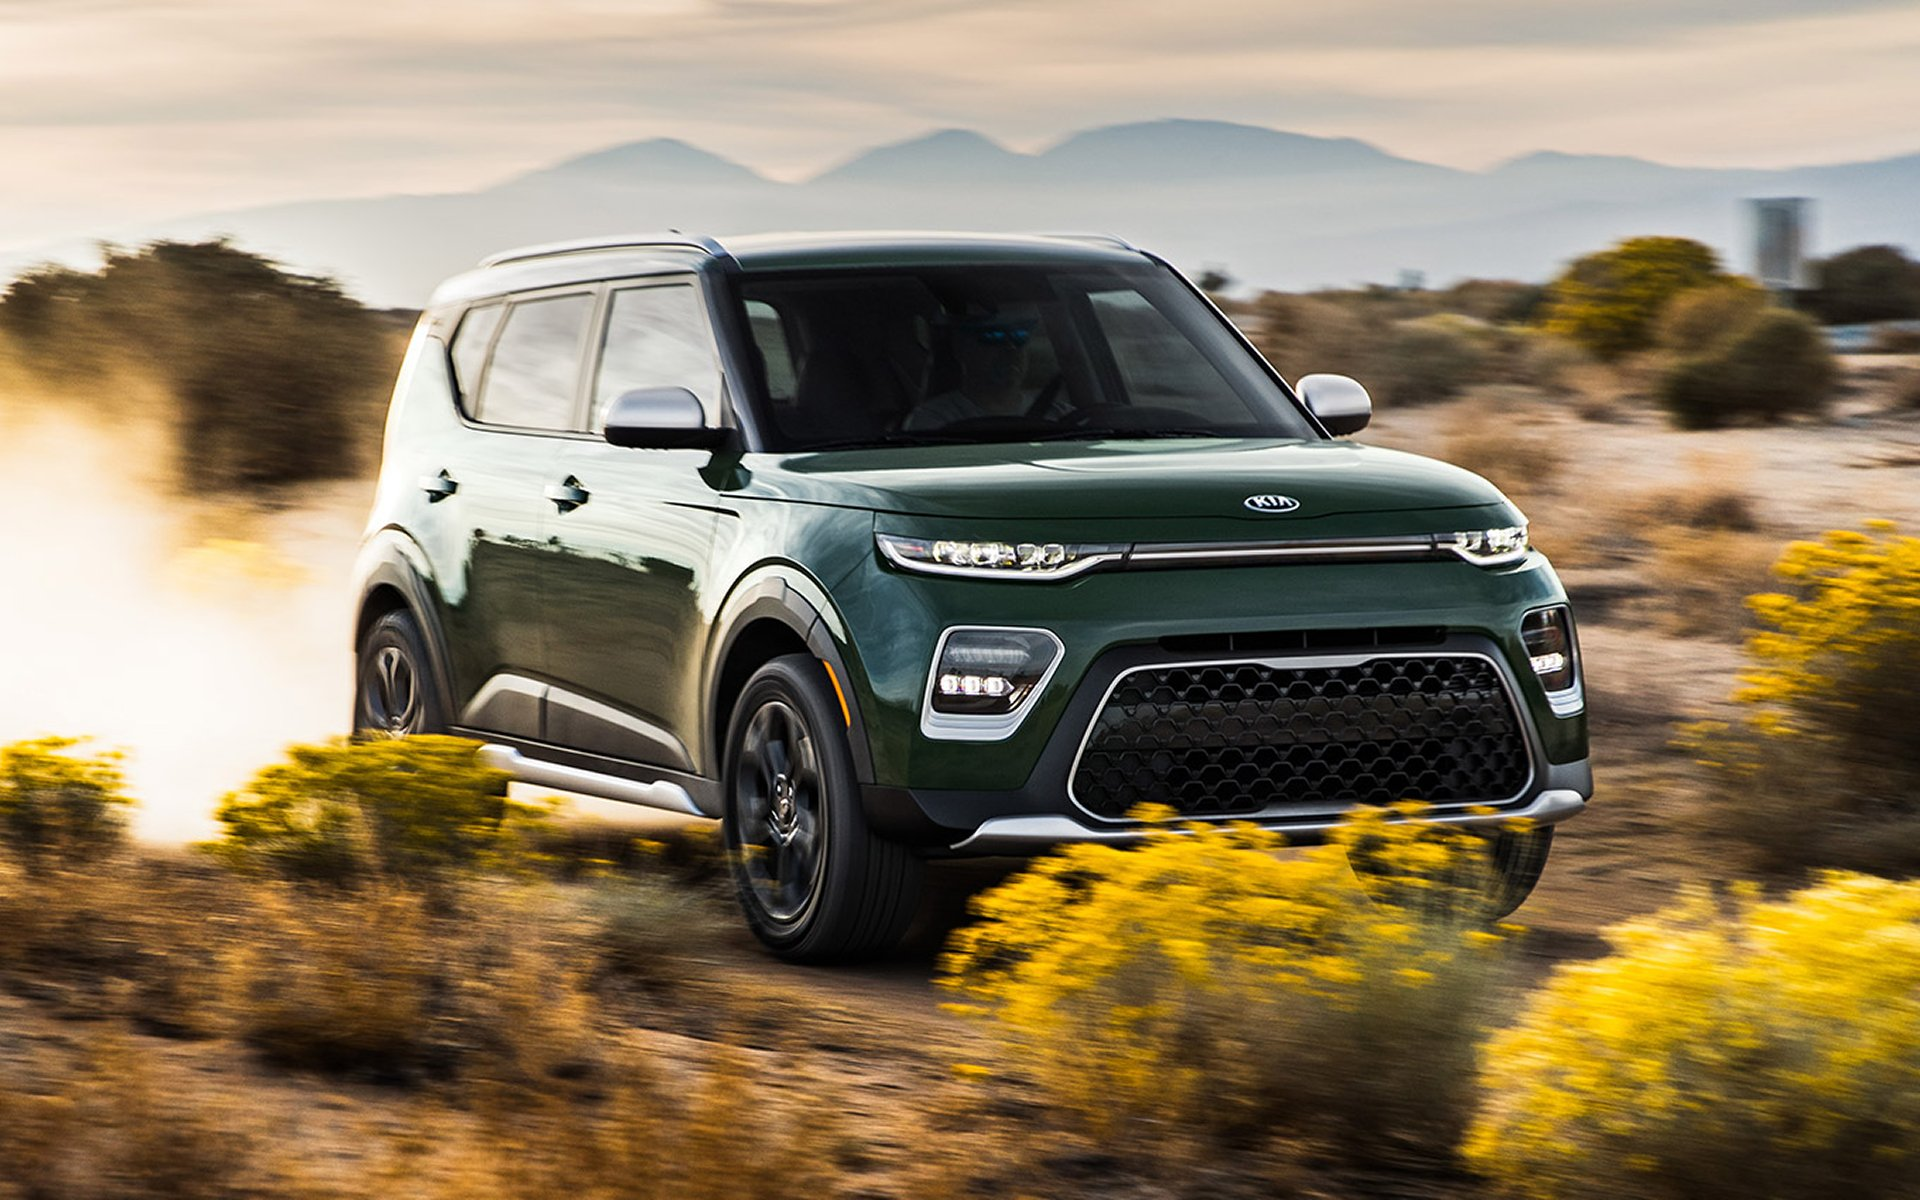 2020 Kia Soul for Sale in San Antonio, TX